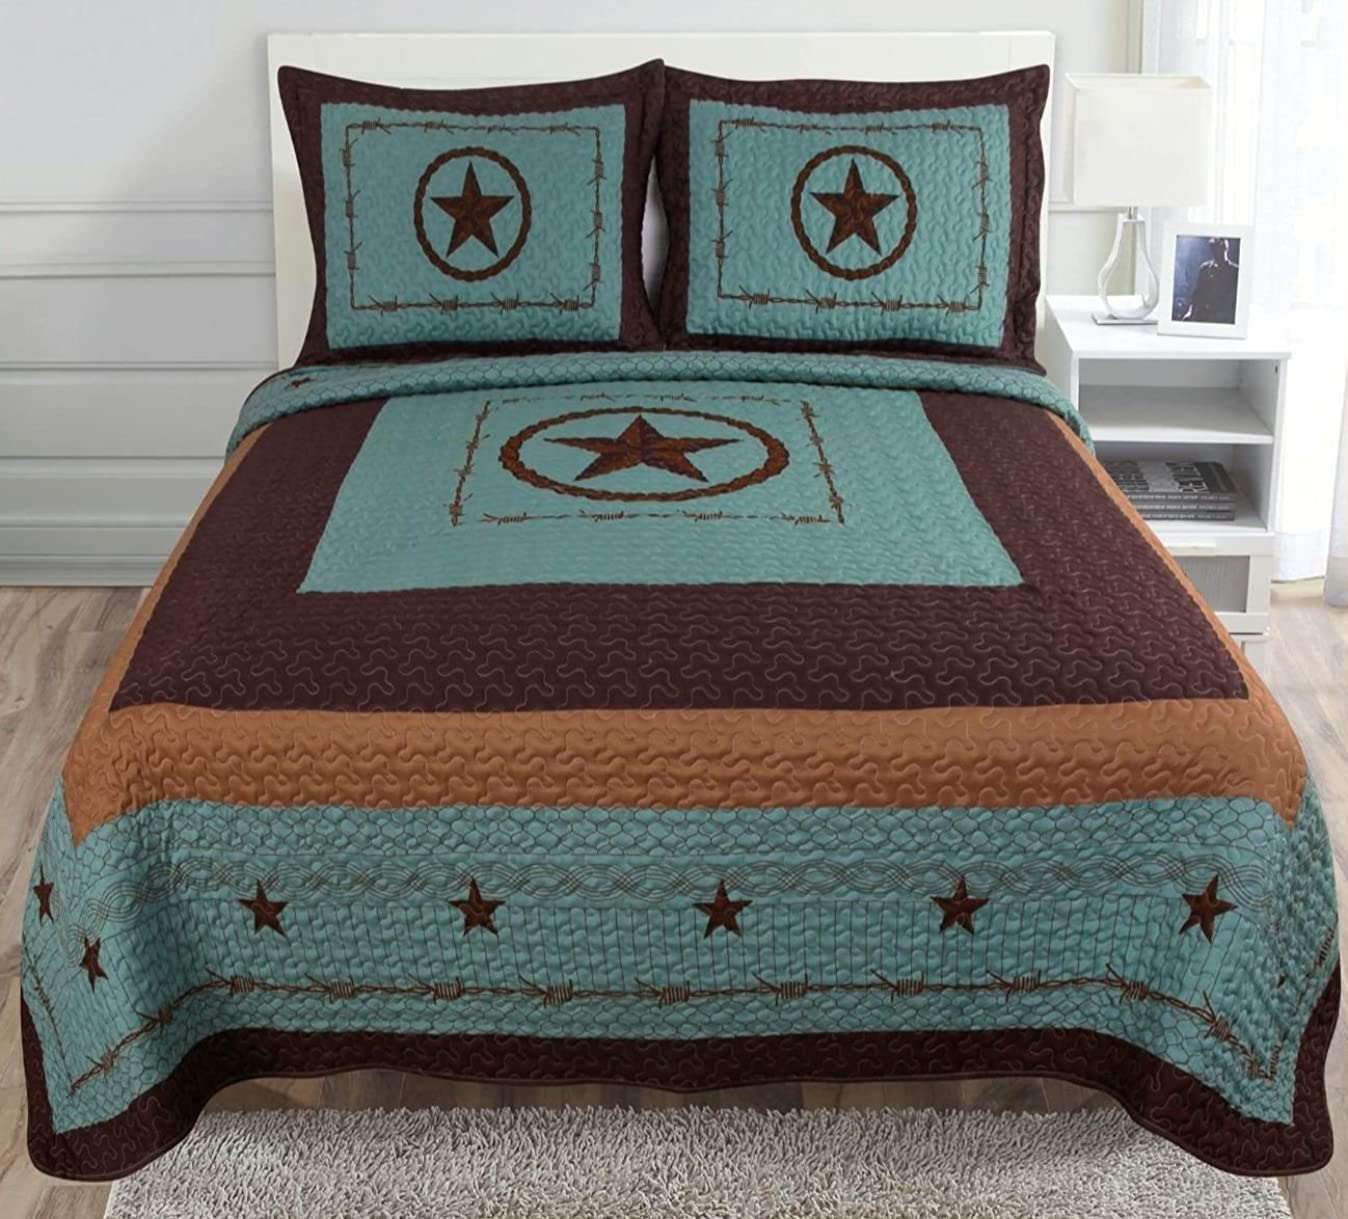 3-piece Western Lone Star Barb Wire Cabin / Lodge Quilt Bedspread Coverlet Set (Queen) x8759274418